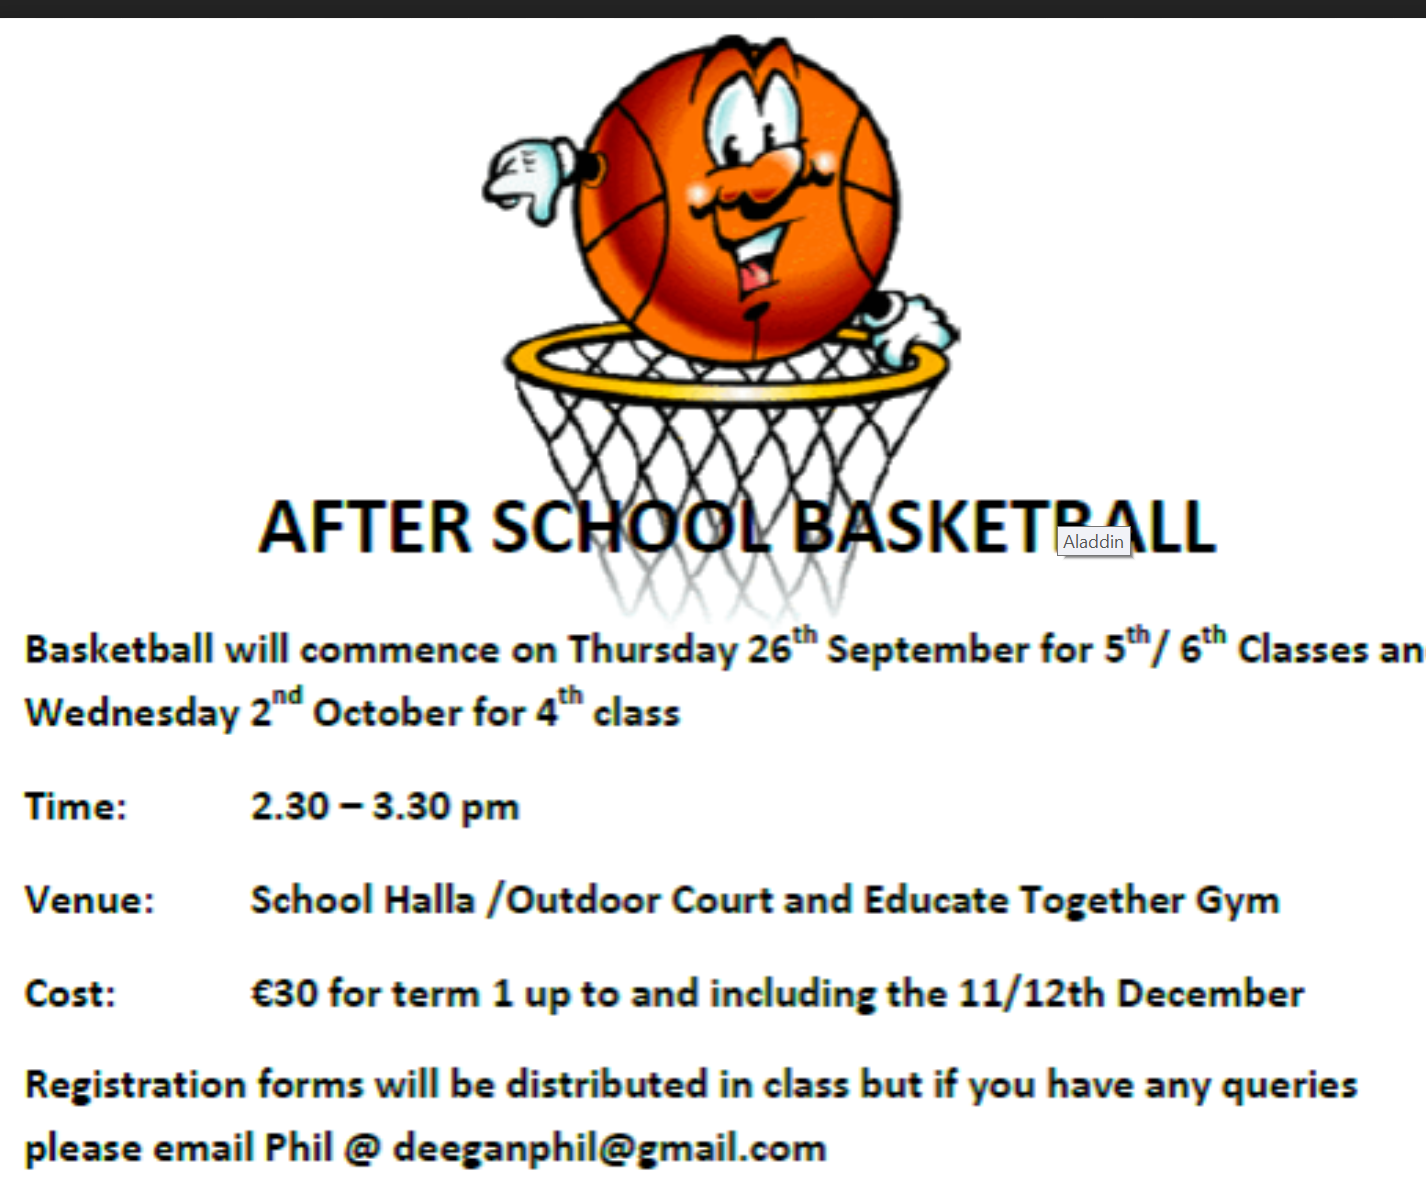 Basketball Training is beginning this week.